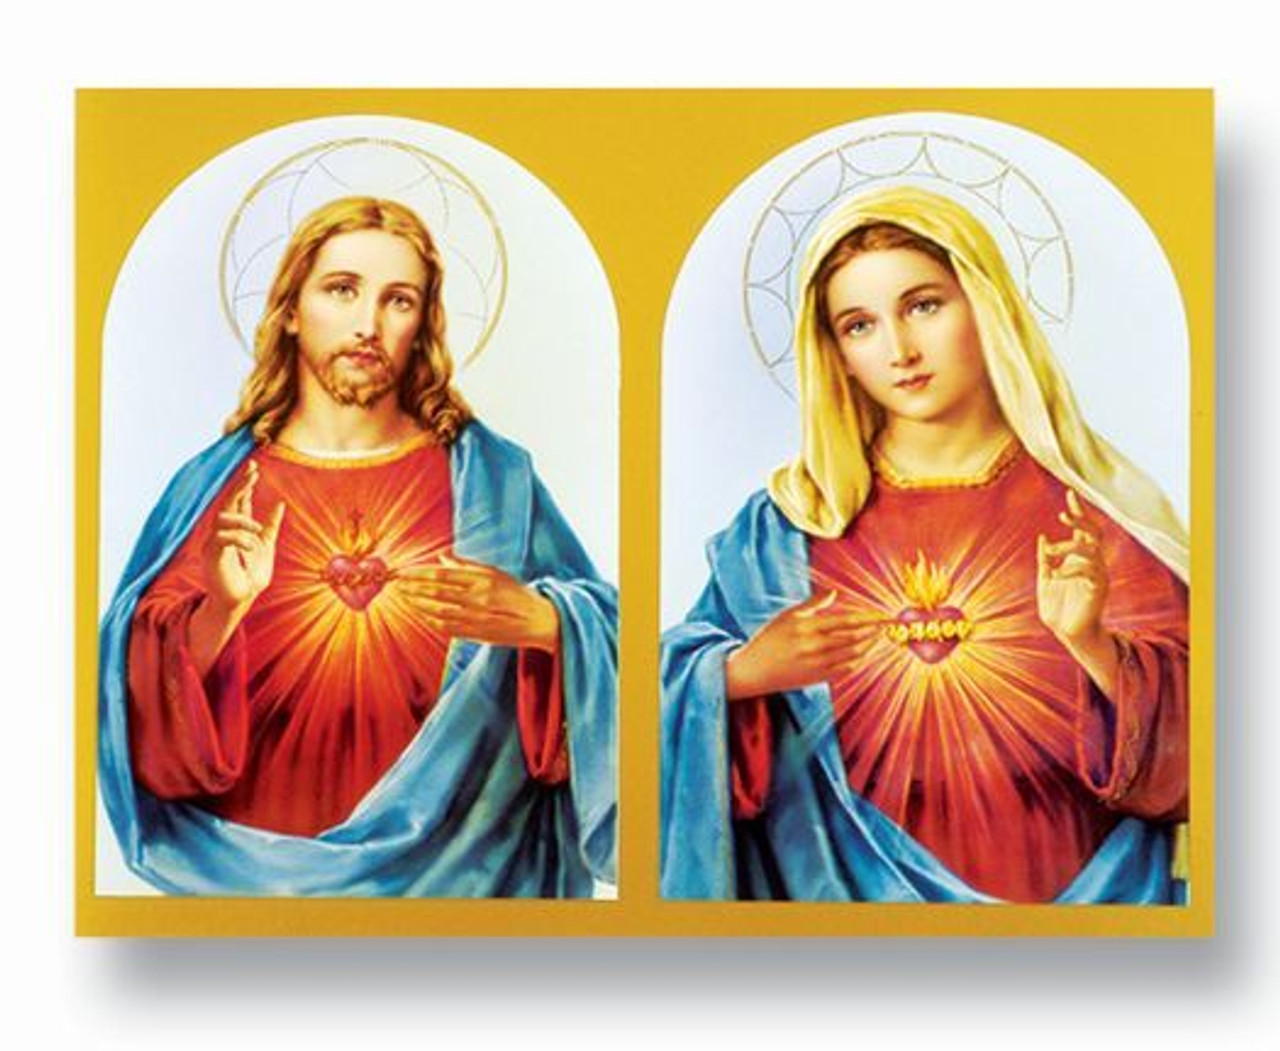 sacred heart of jesus immaculate heart of mary poster 19x27 192191